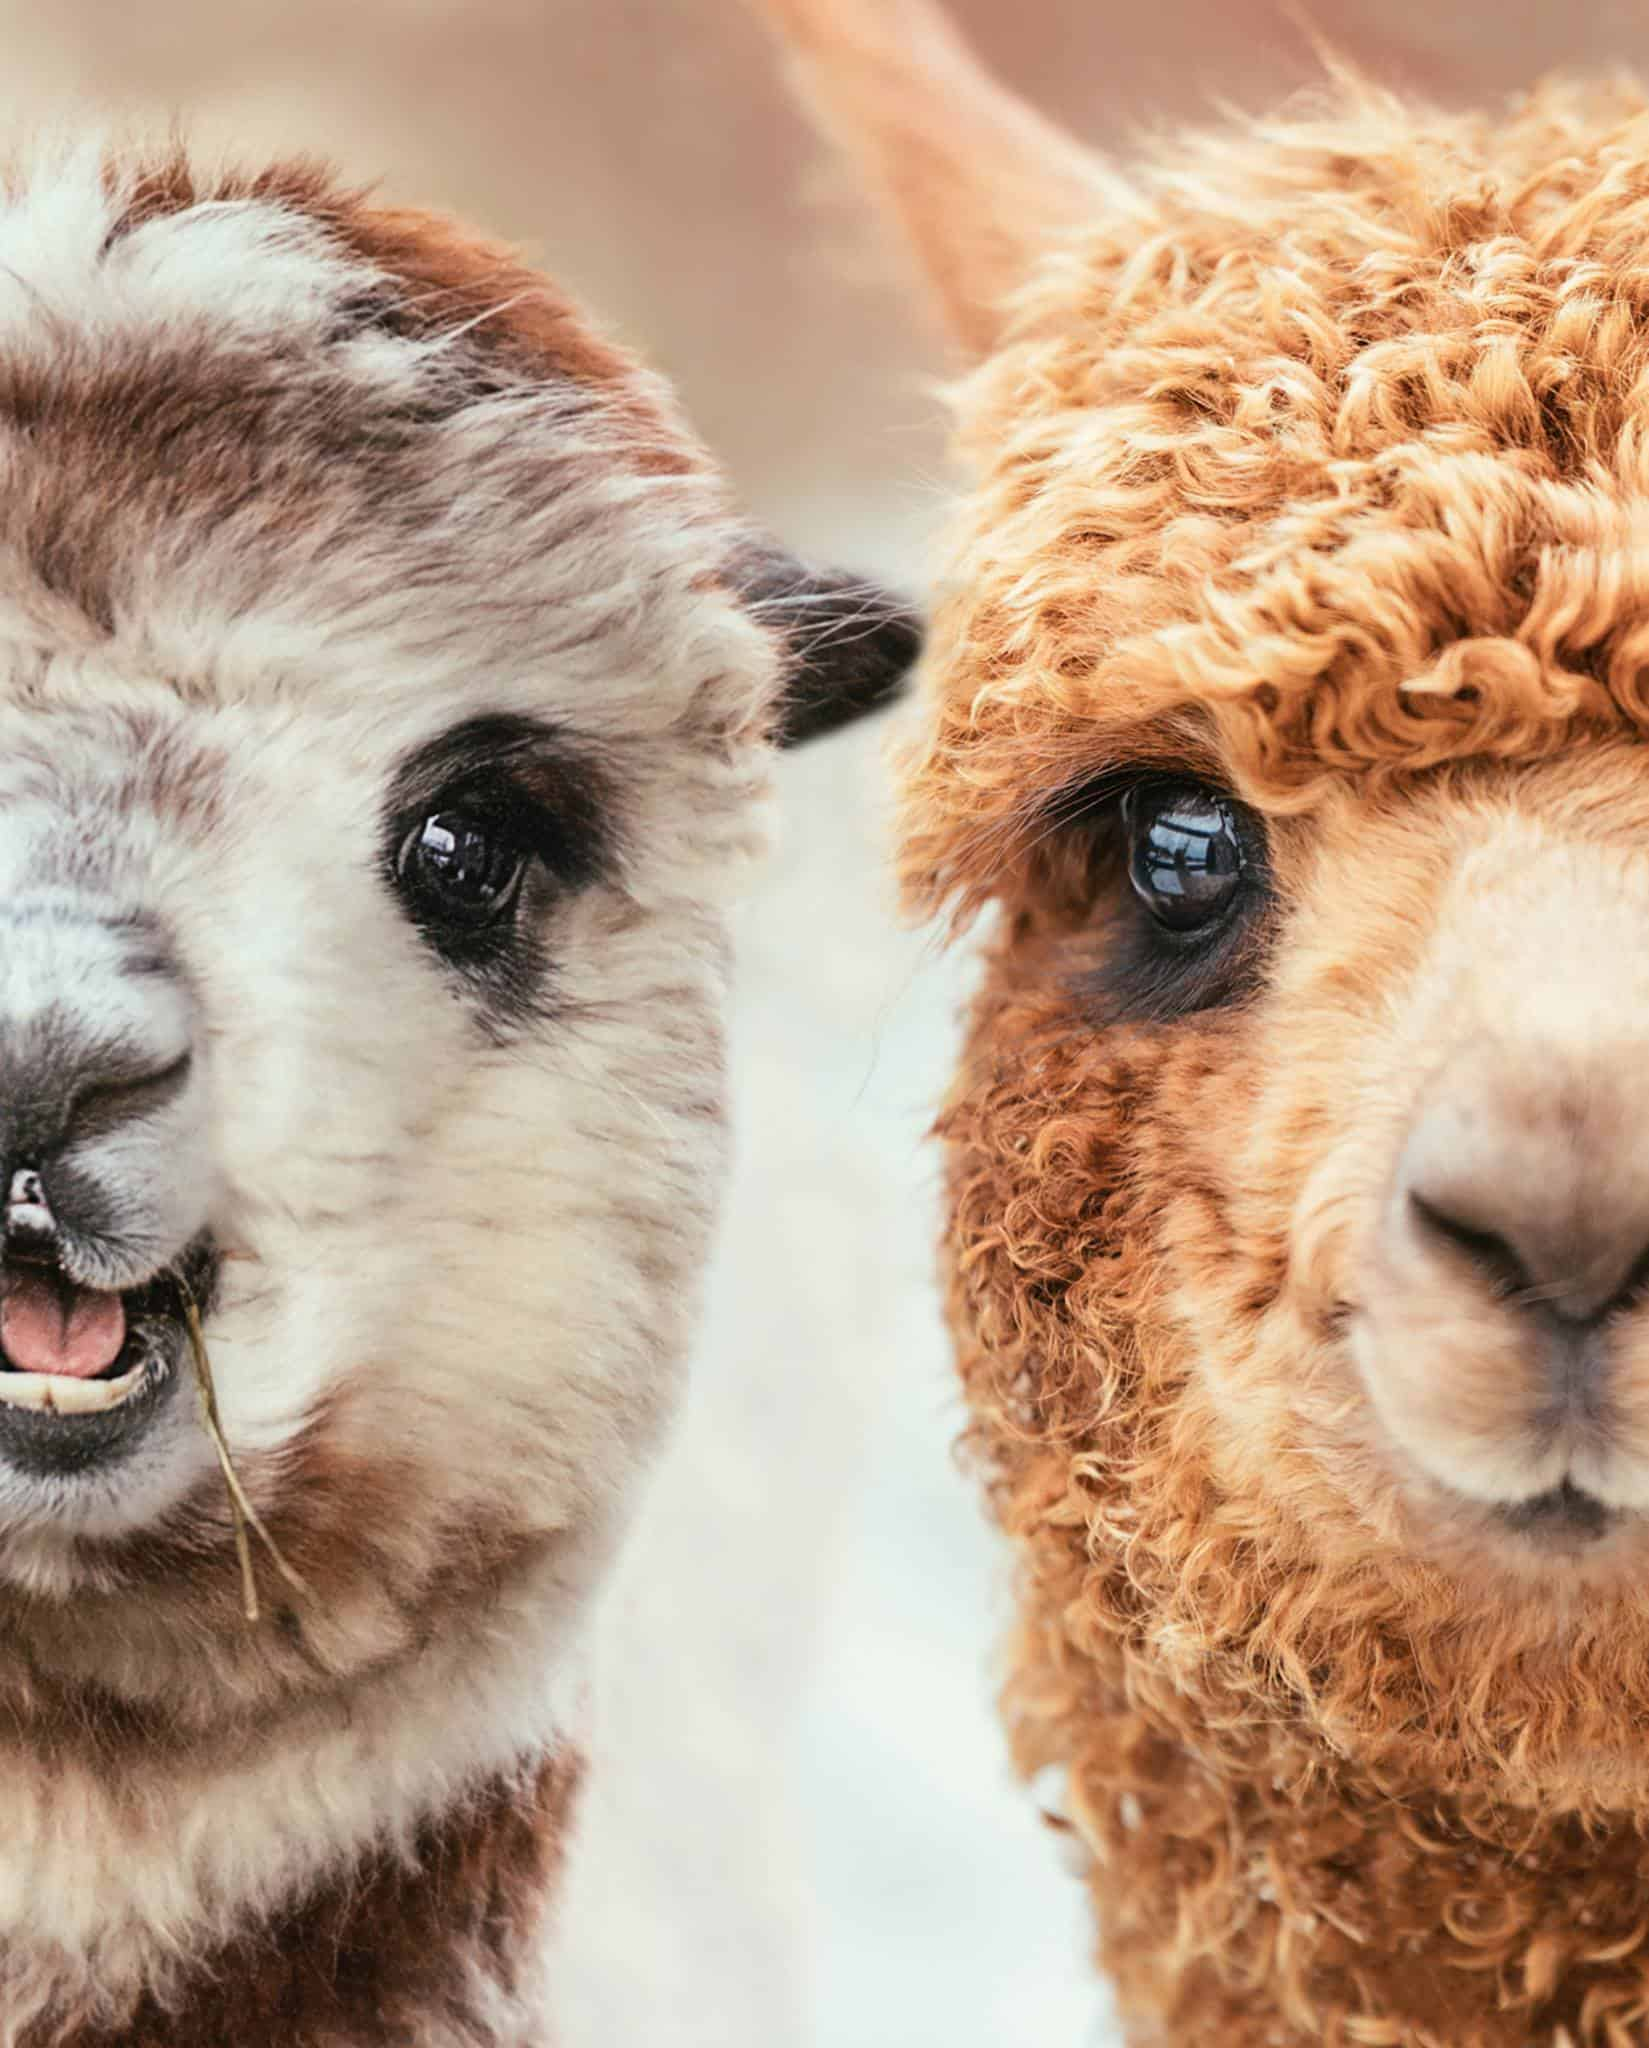 alpacas are beautiful animals, and these two are looking straight into the camera